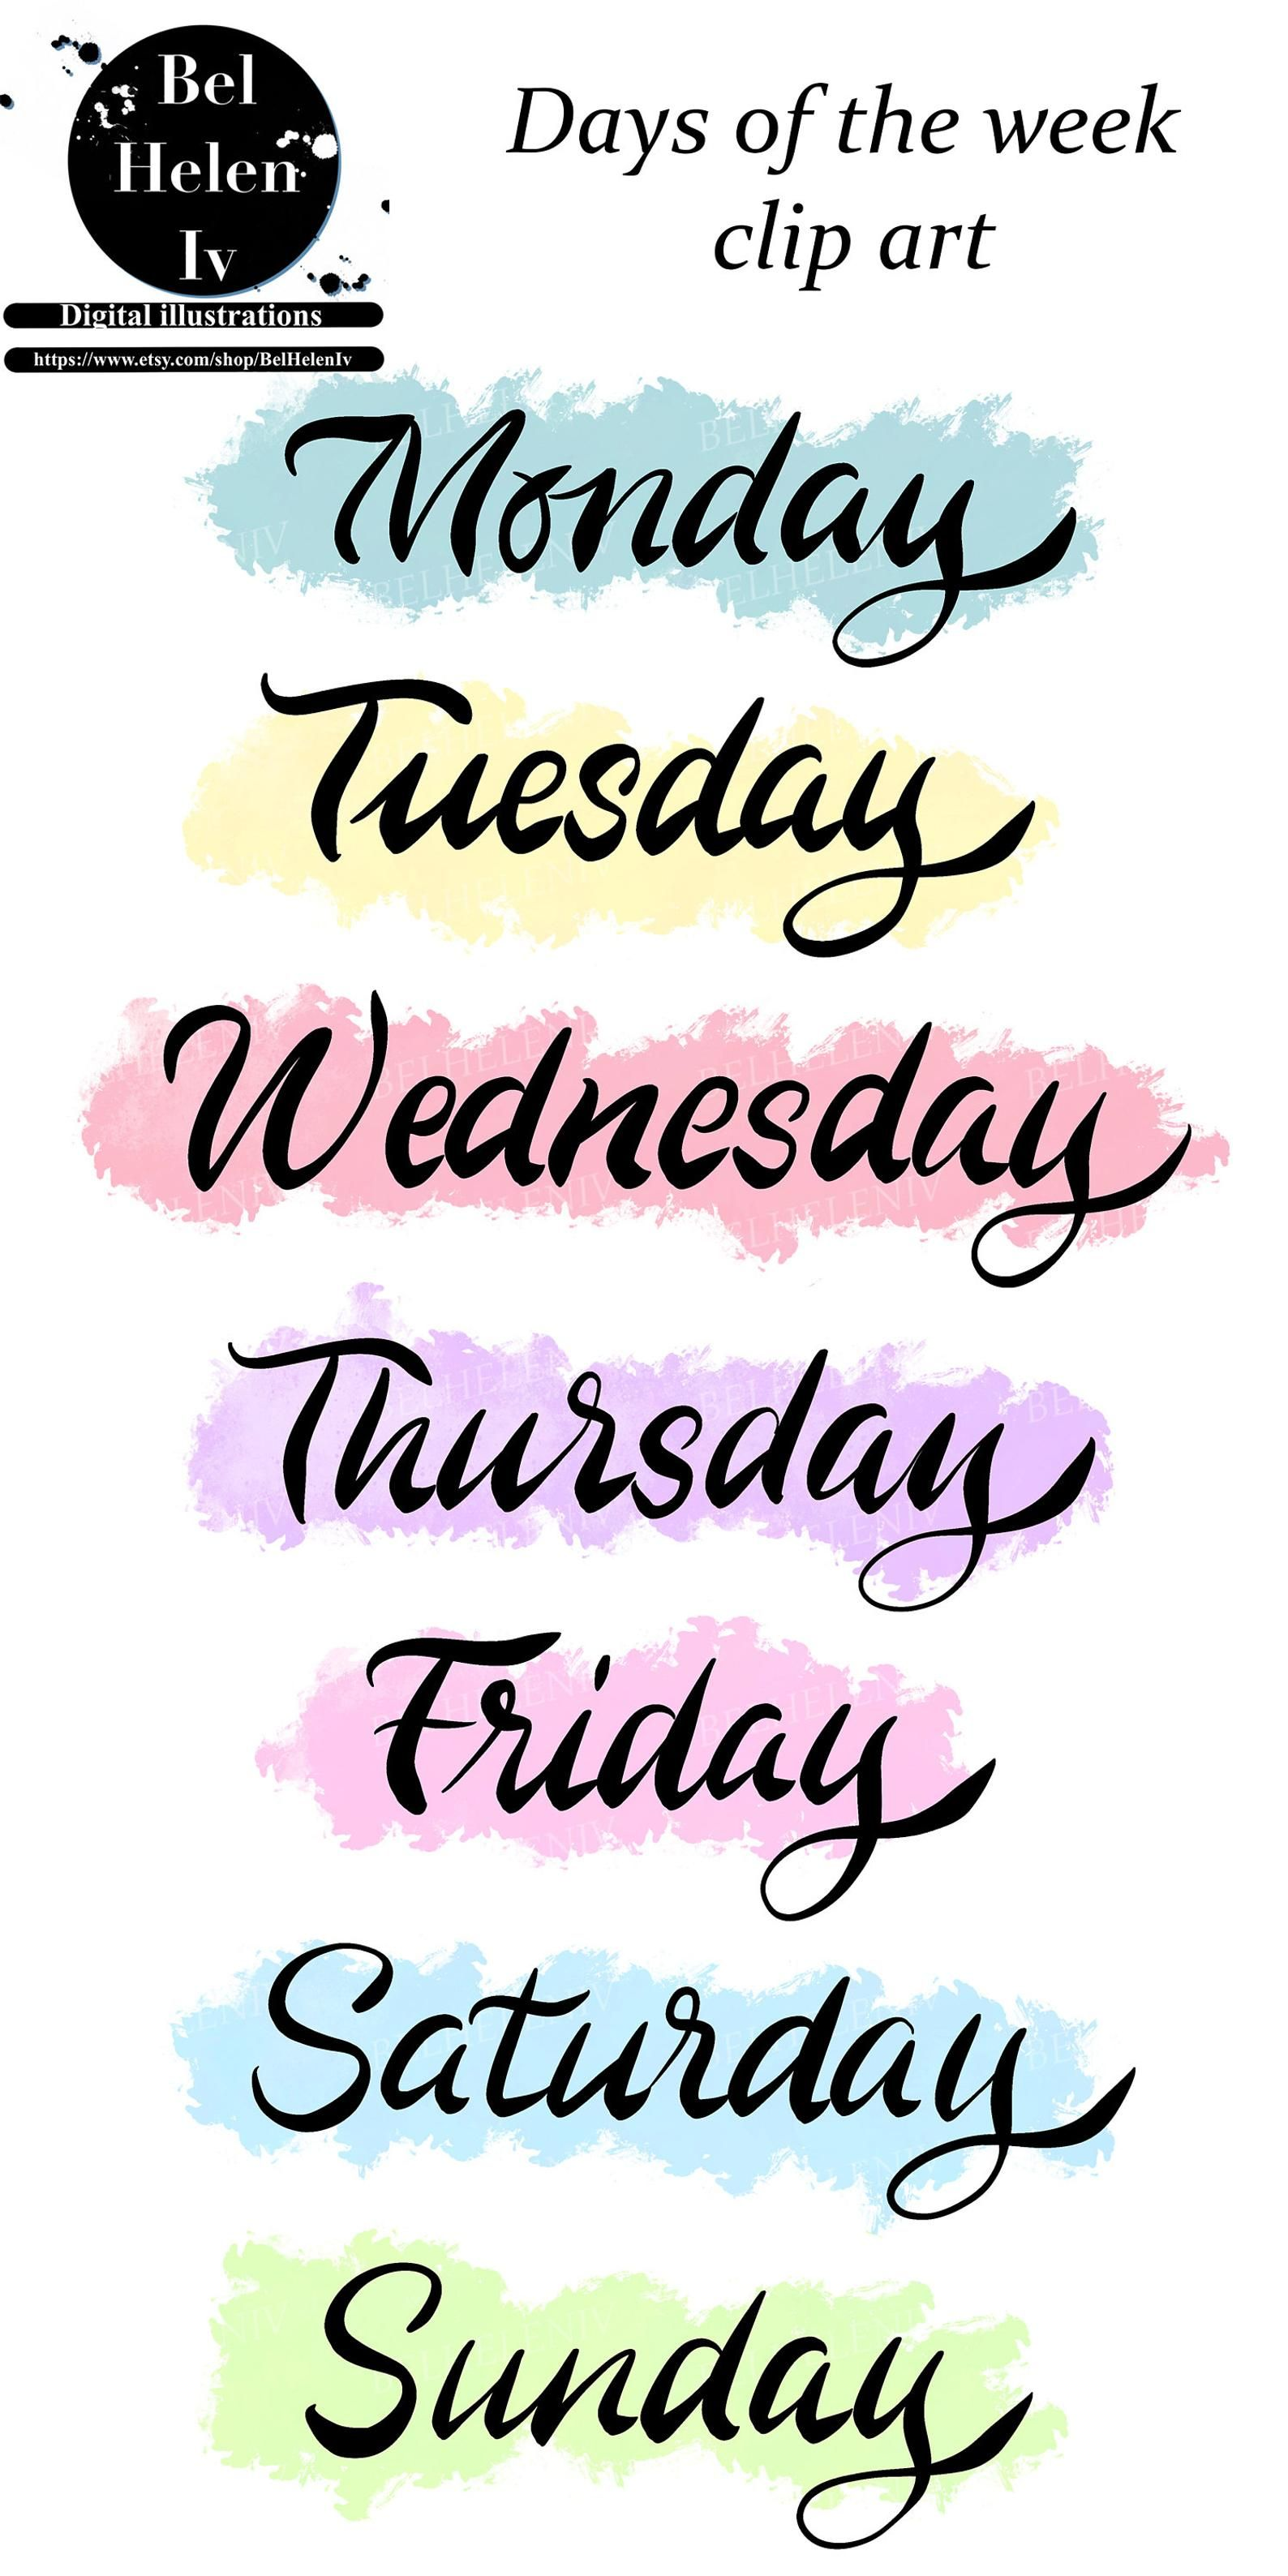 Days Of The Week Clip Art Words With Color Background Clip Etsy In 2021 Bullet Journal Lettering Ideas Clip Art Bullet Journal Stickers